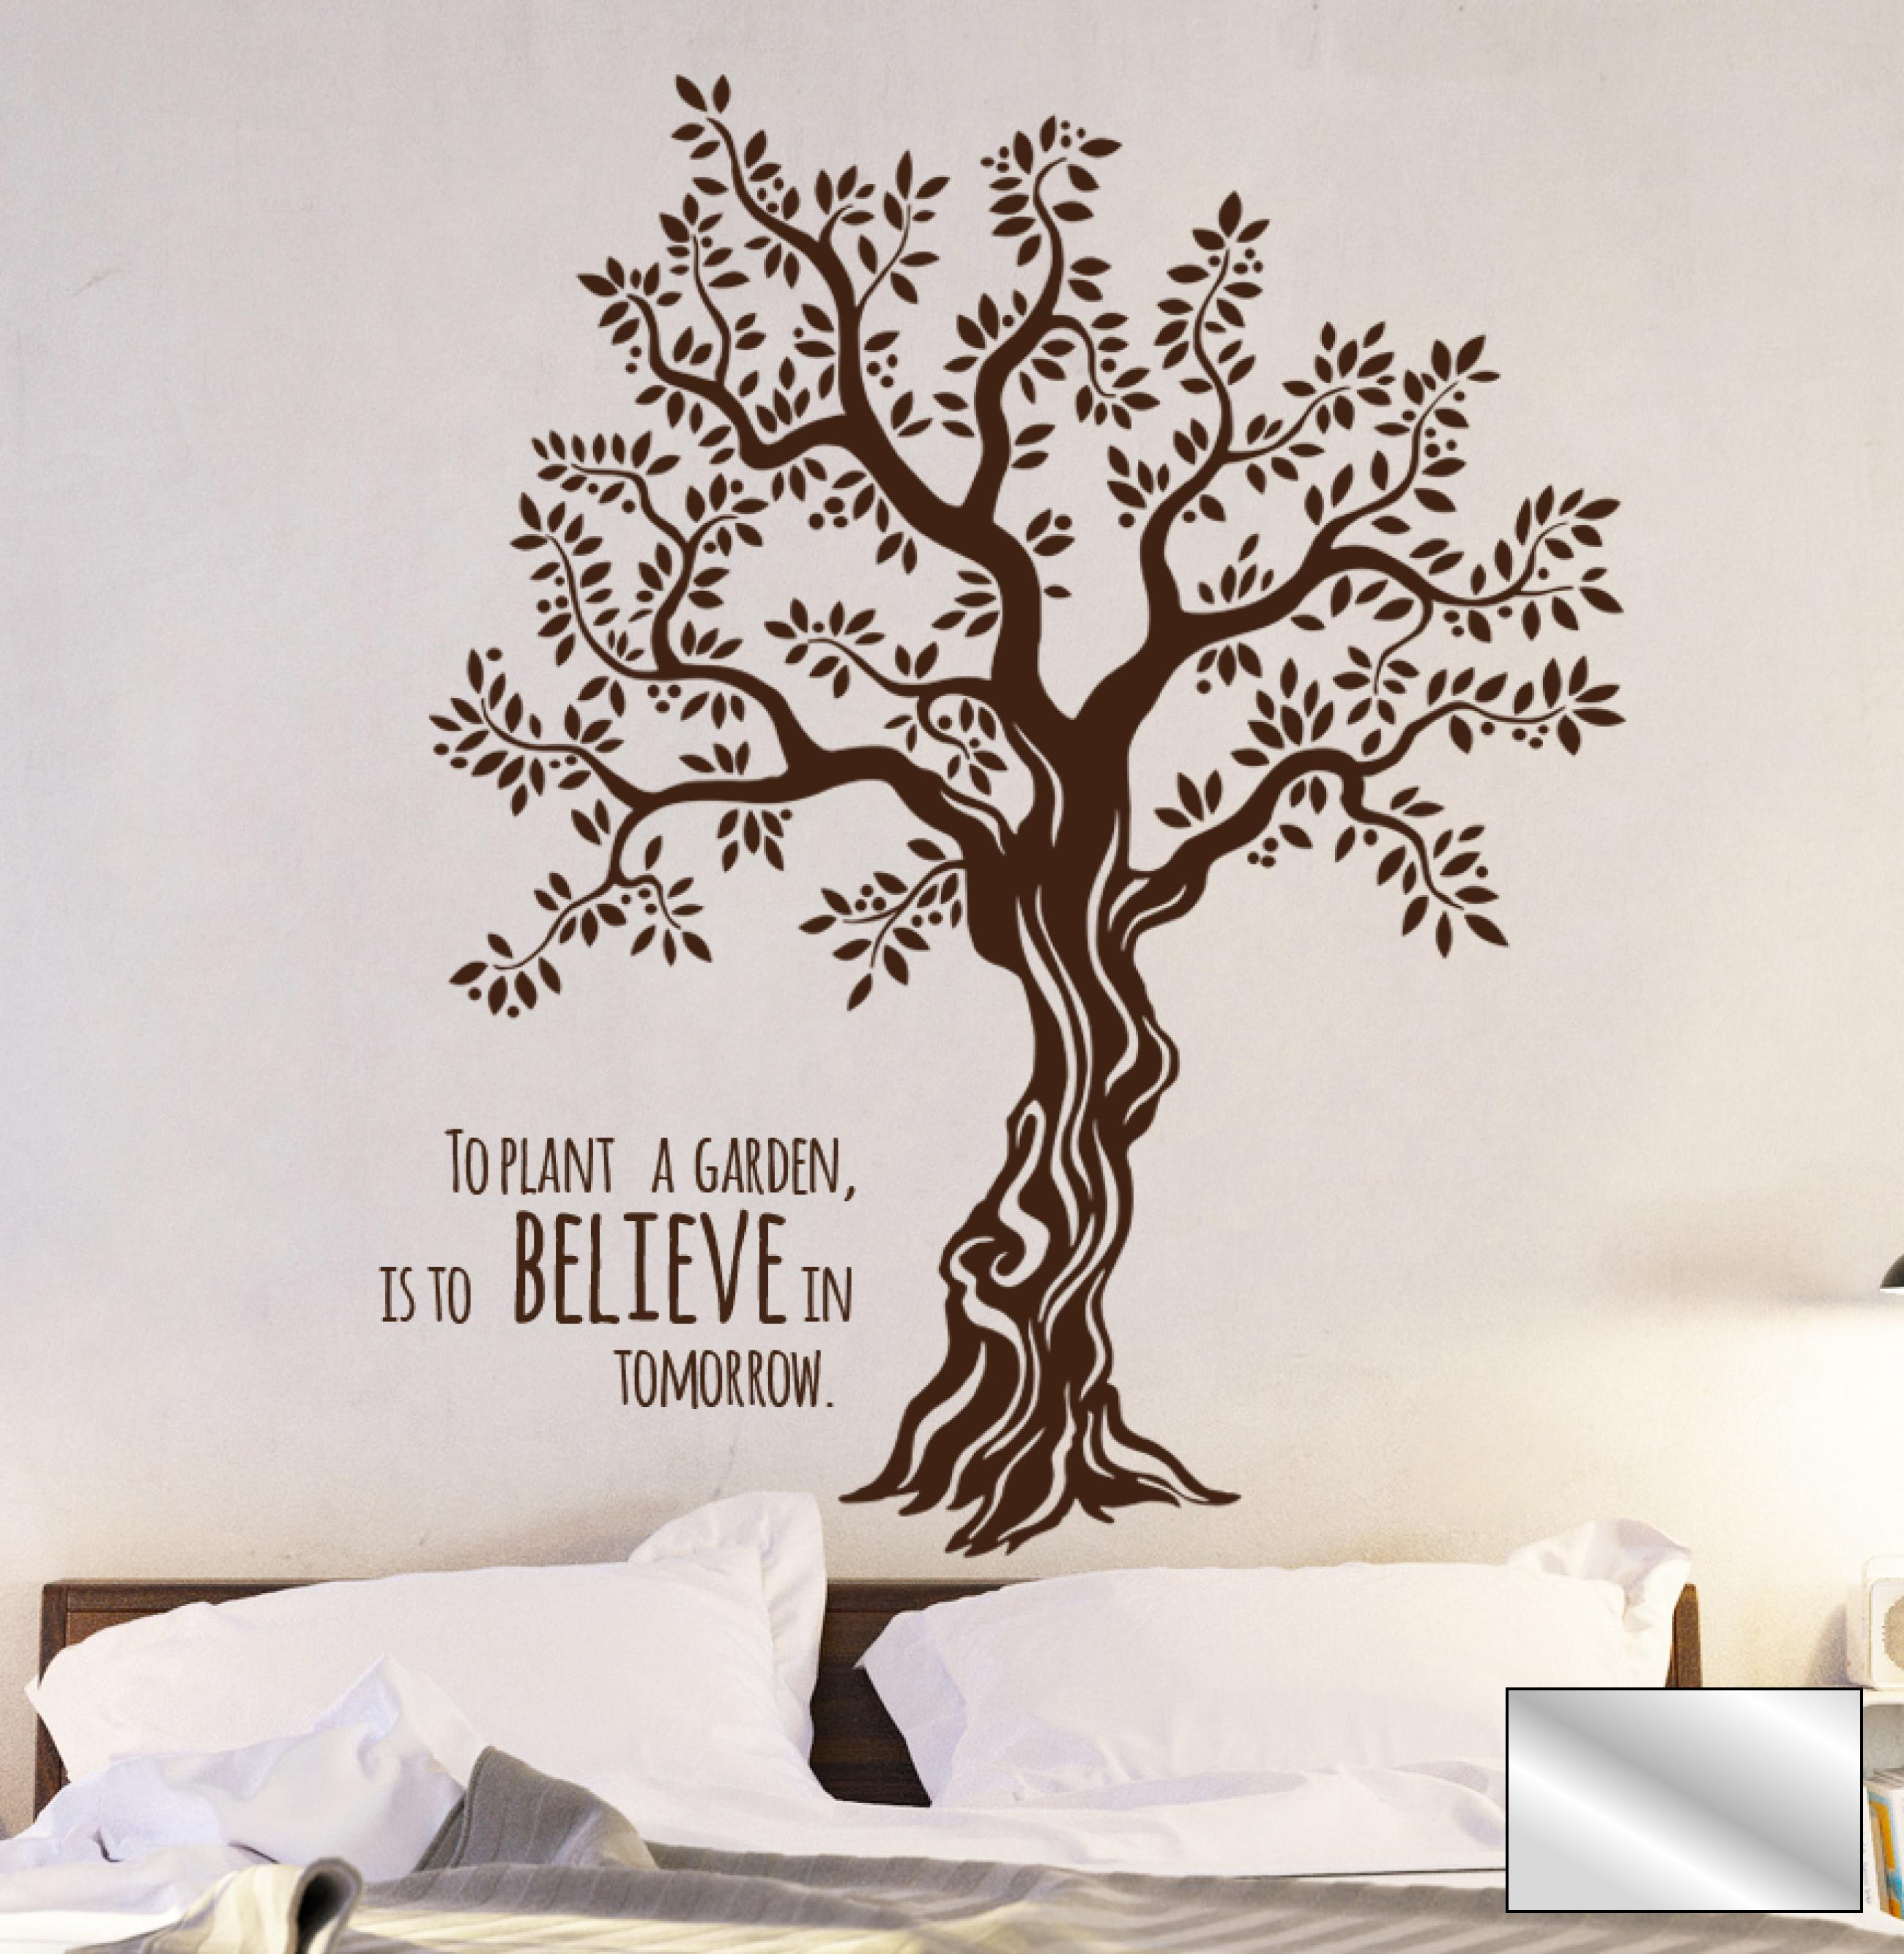 wandtattoo baum olivenbaum mit spruch m1567 ebay. Black Bedroom Furniture Sets. Home Design Ideas